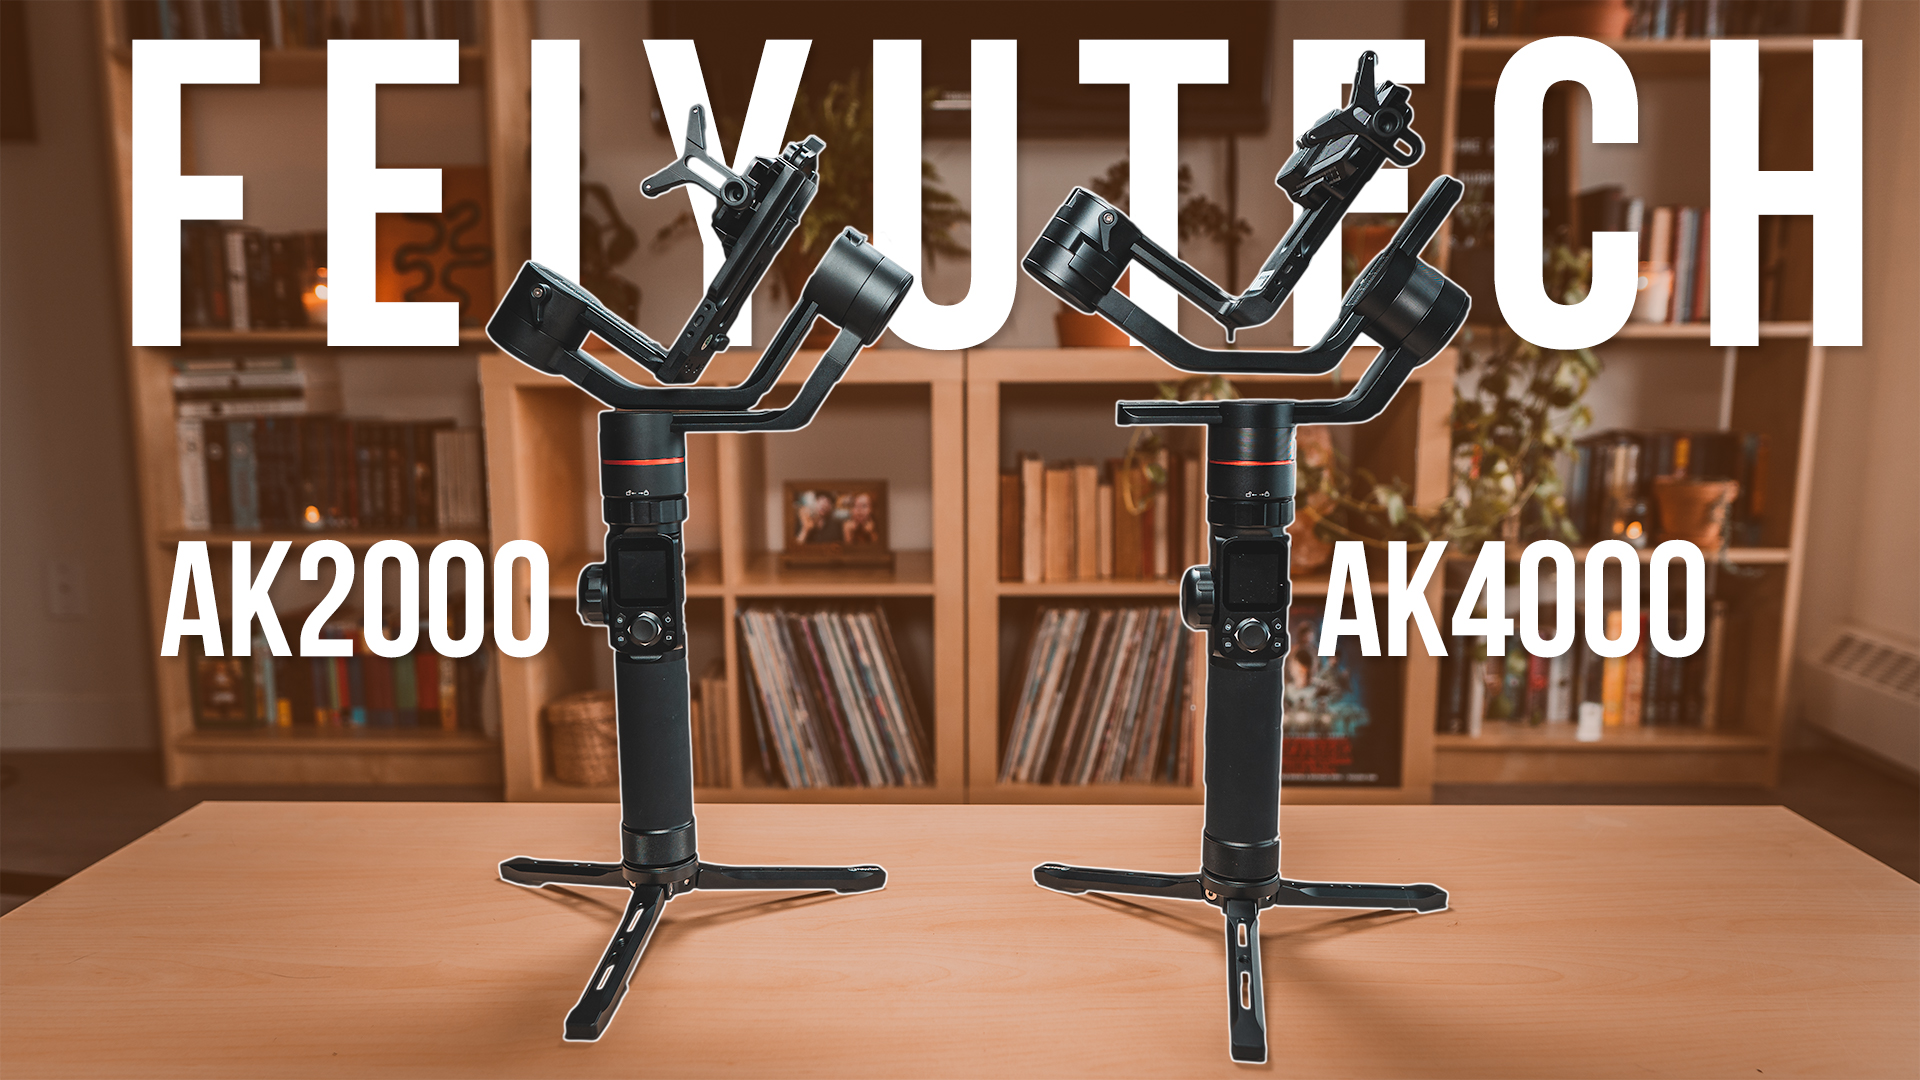 Feiyutech AK2000/AK4000 Gimbal Review + GIVEAWAY!